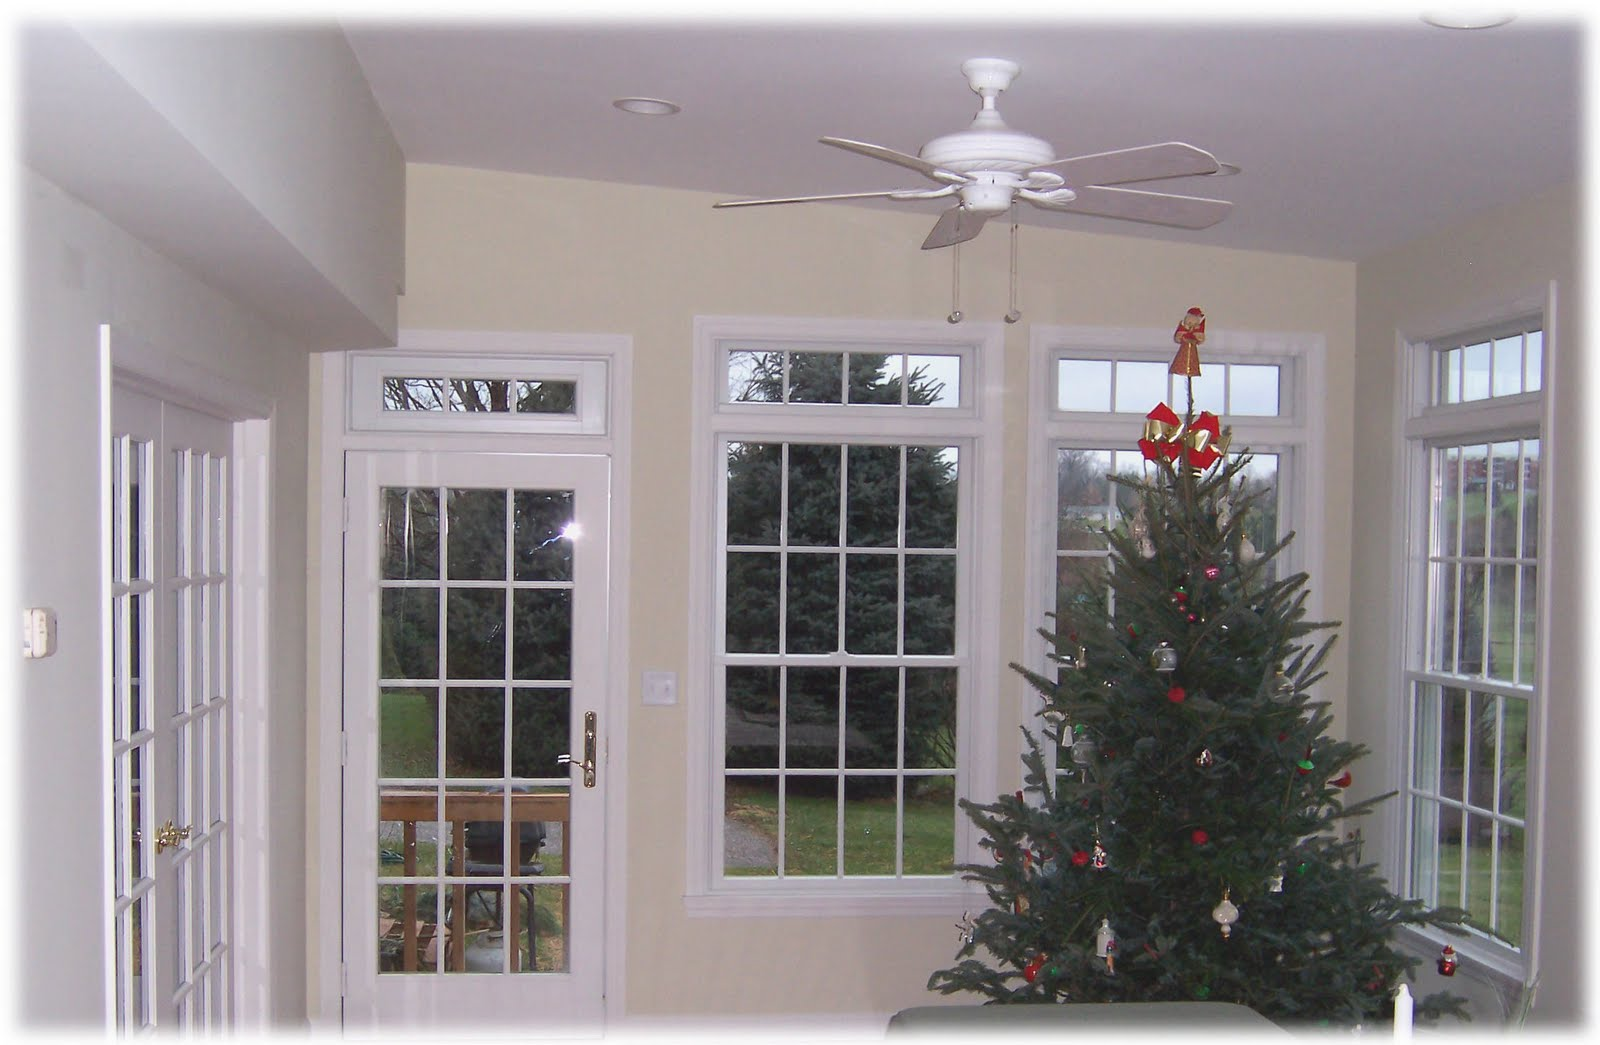 All about window window designs modern or old fashioned for House doors with windows